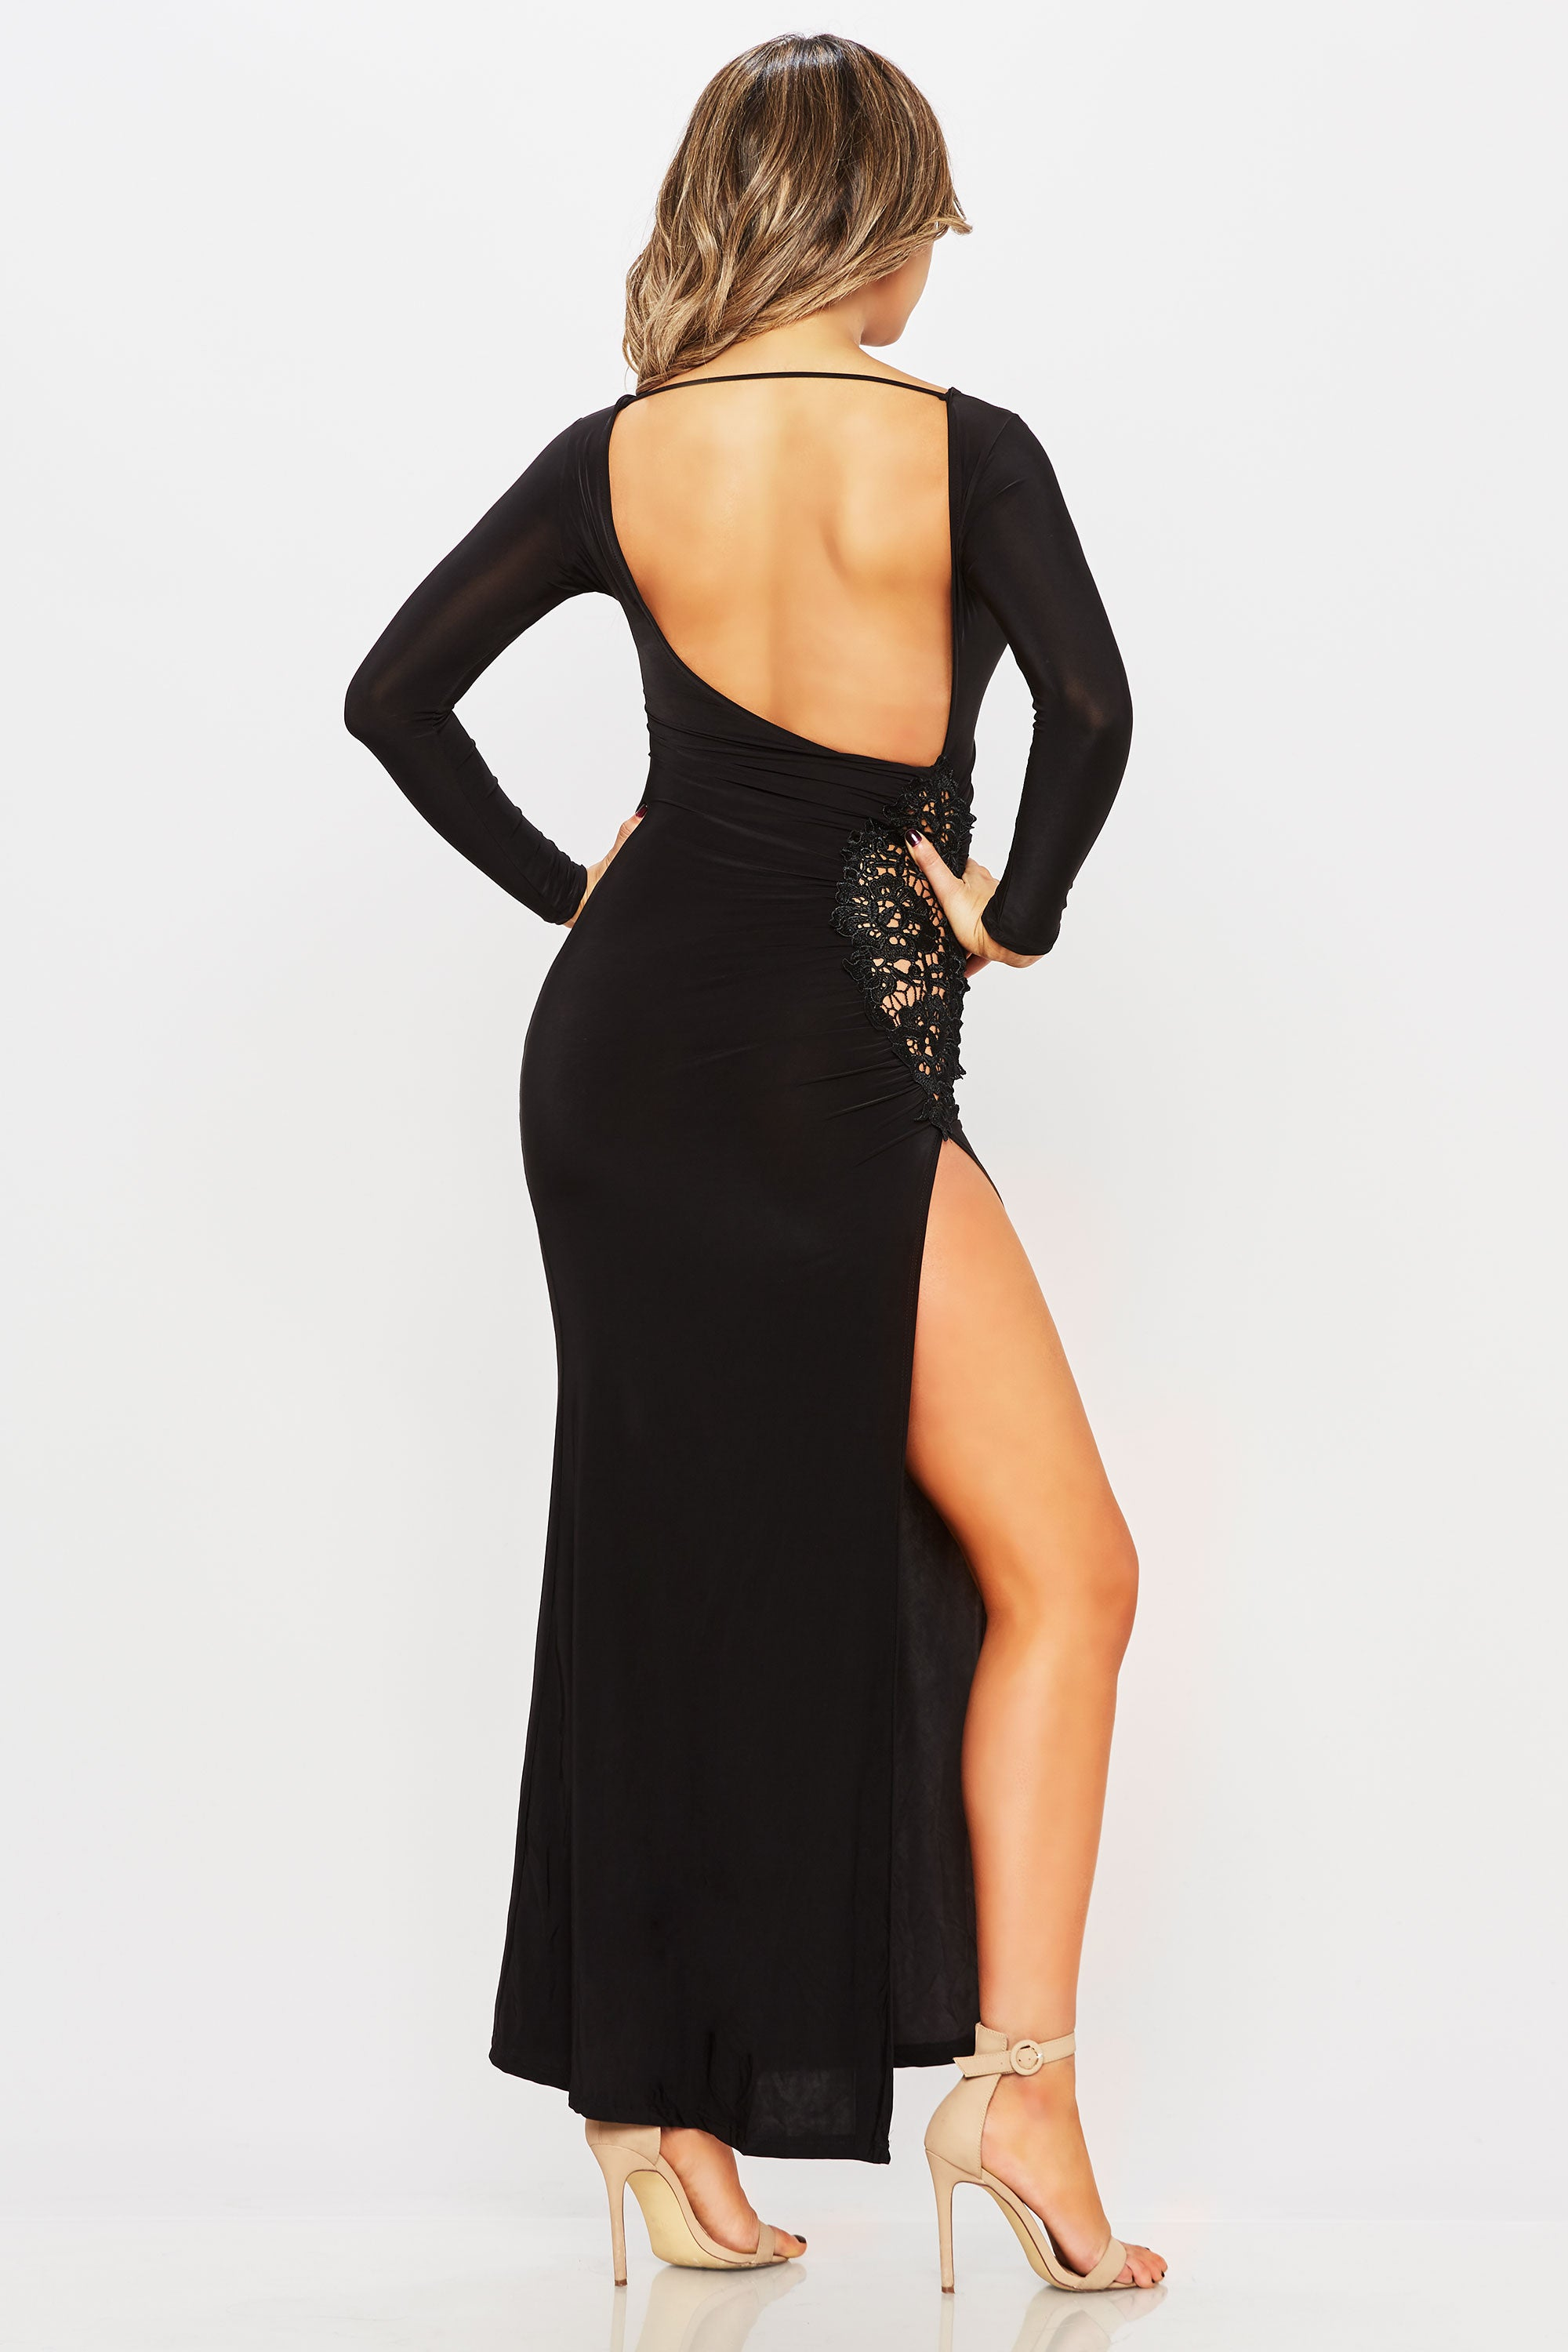 Caught Up In A Moment Dress - HoneyBum